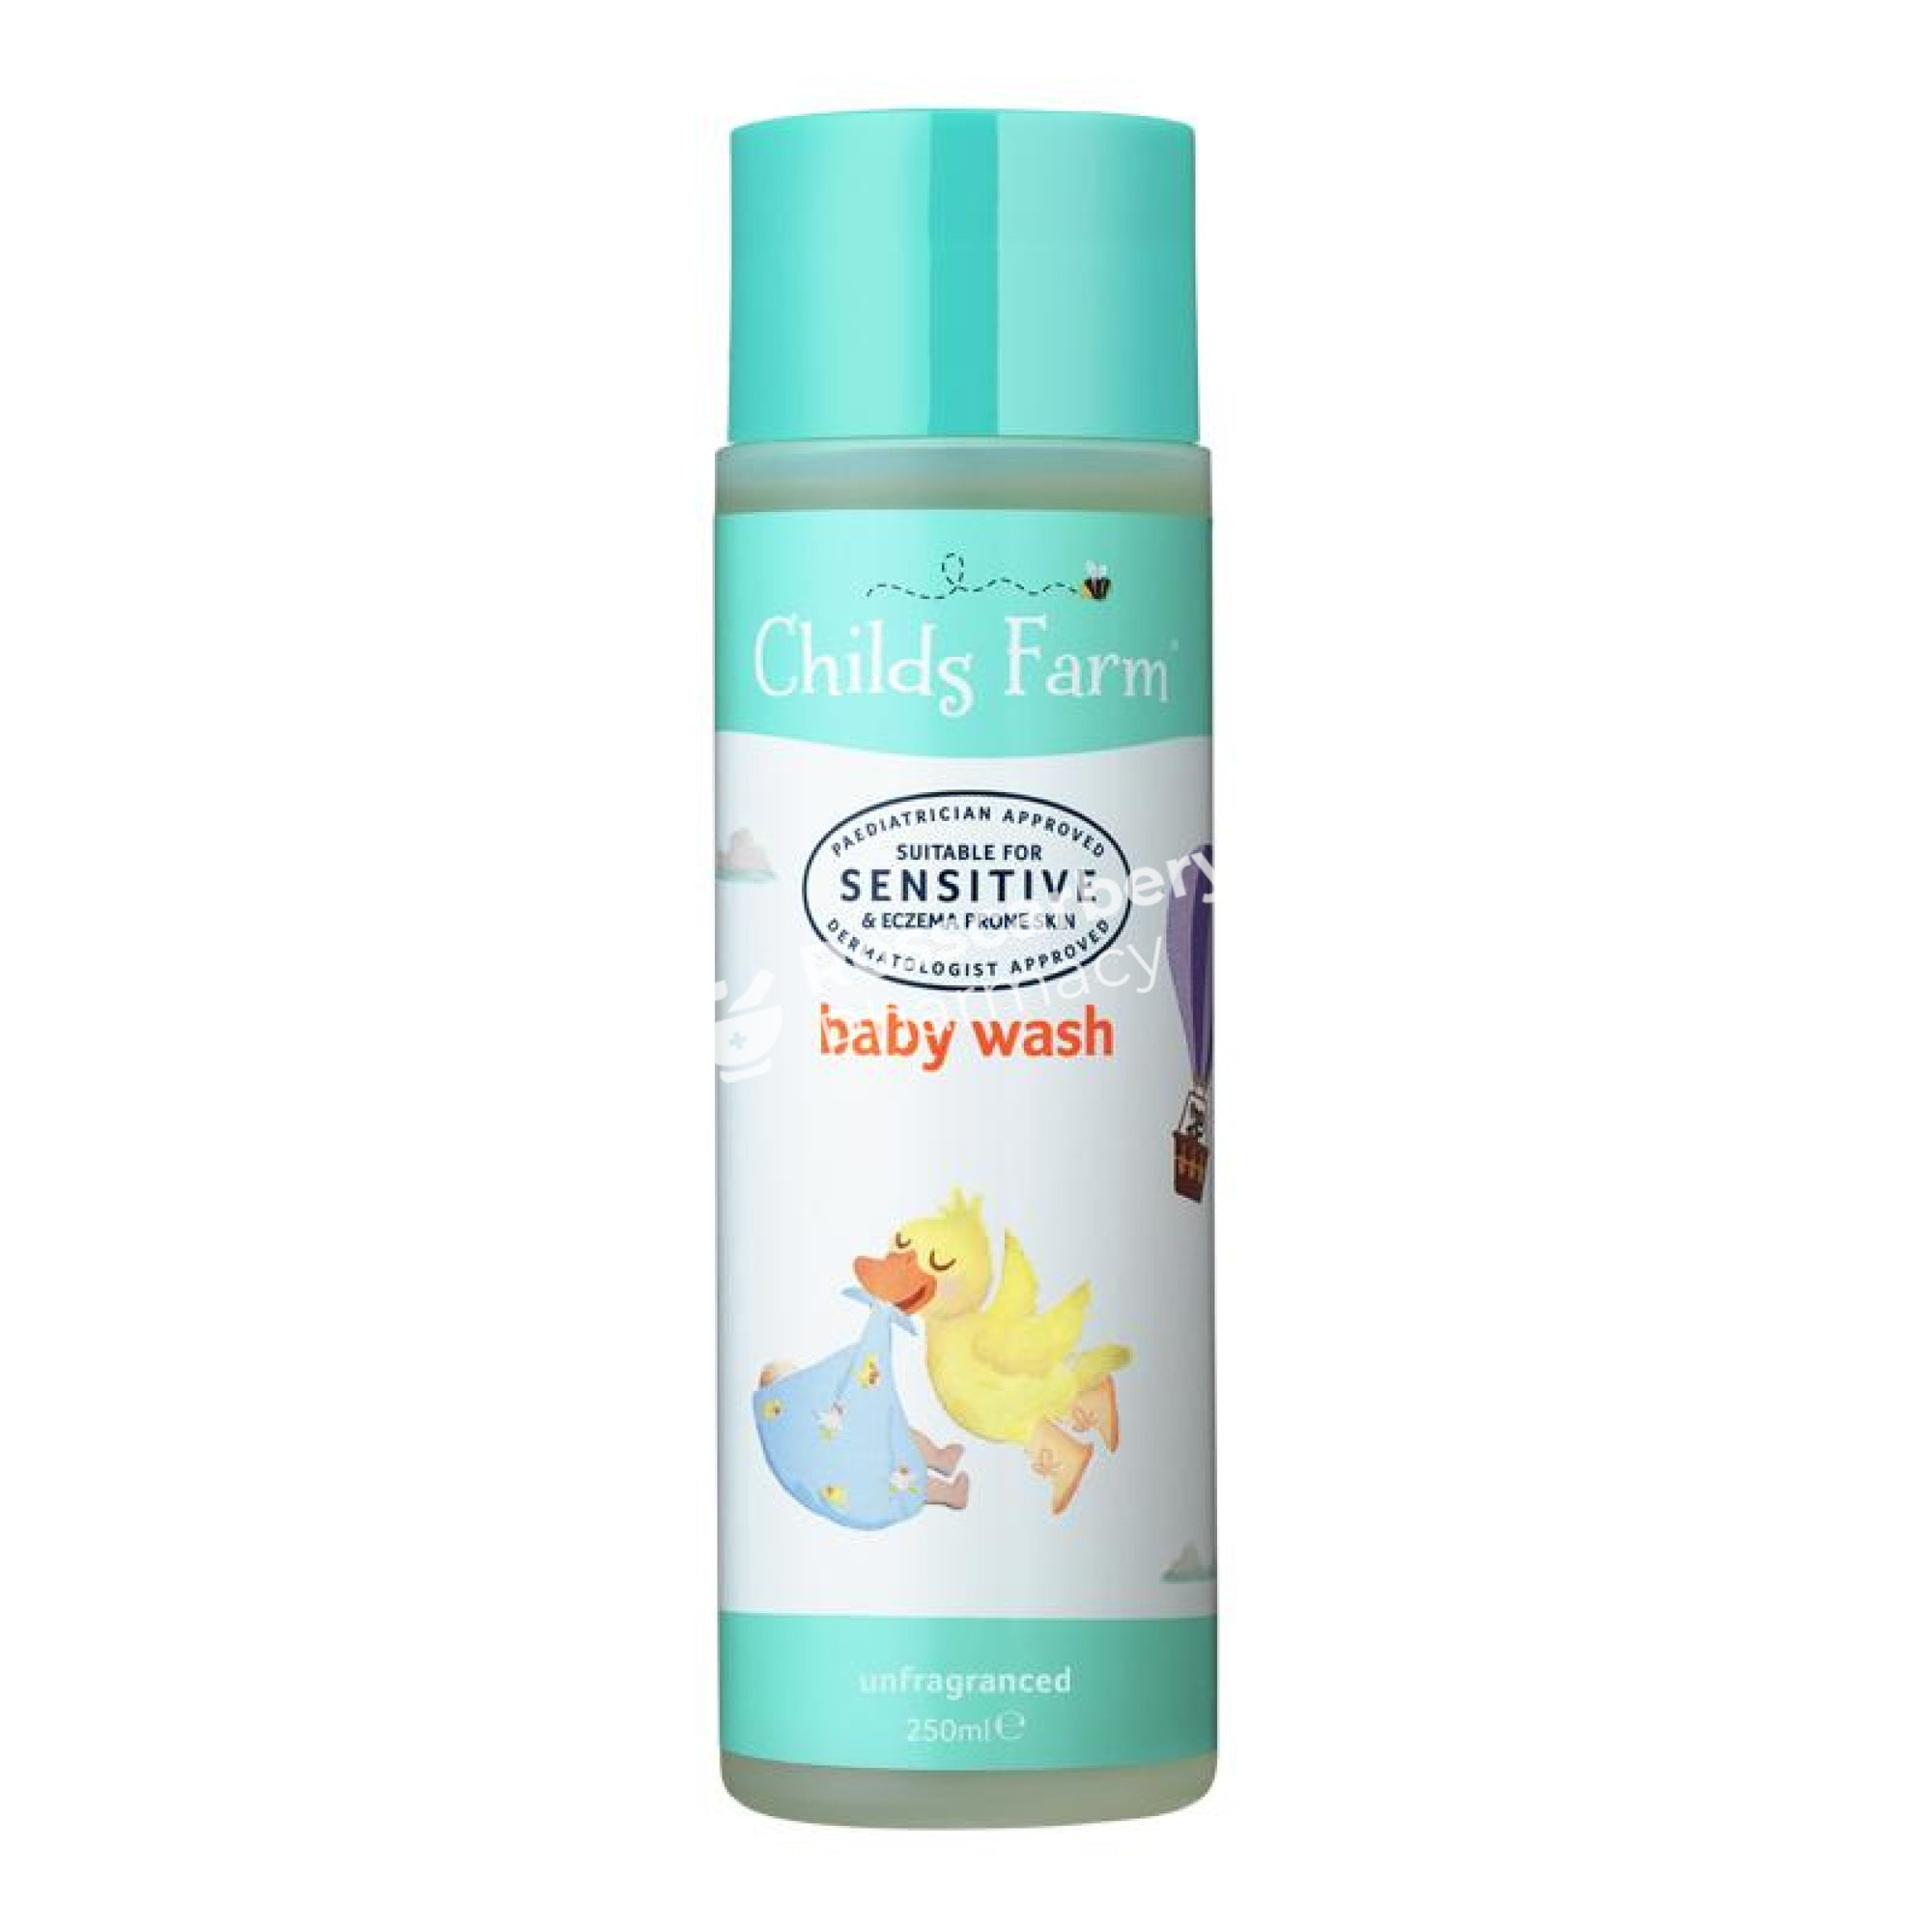 Childs Farm Baby Wash - Unfragranced Bath & Hair